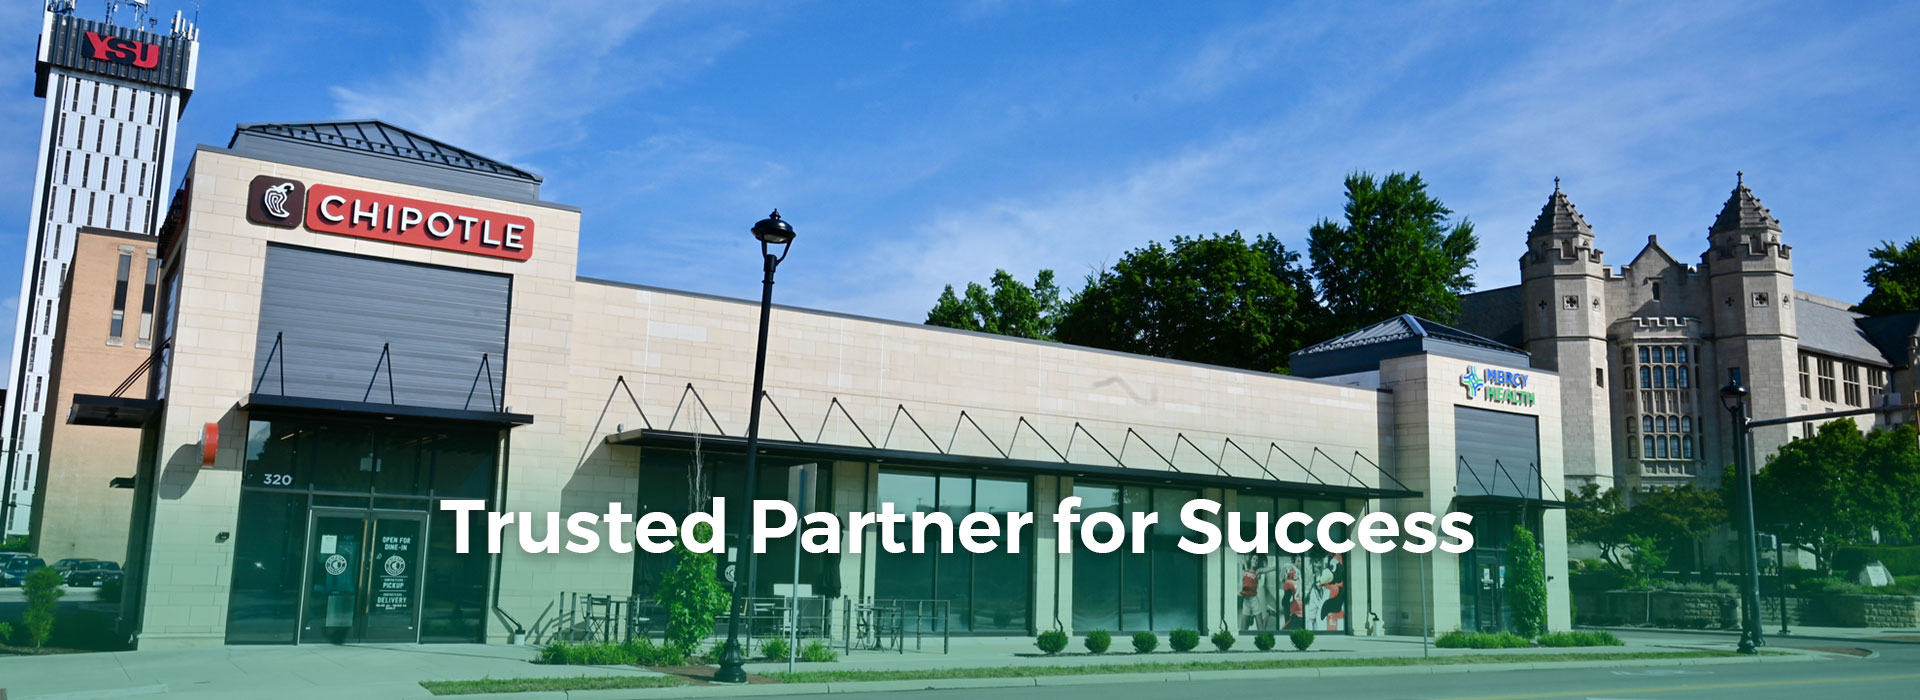 Trusted Partner for Success